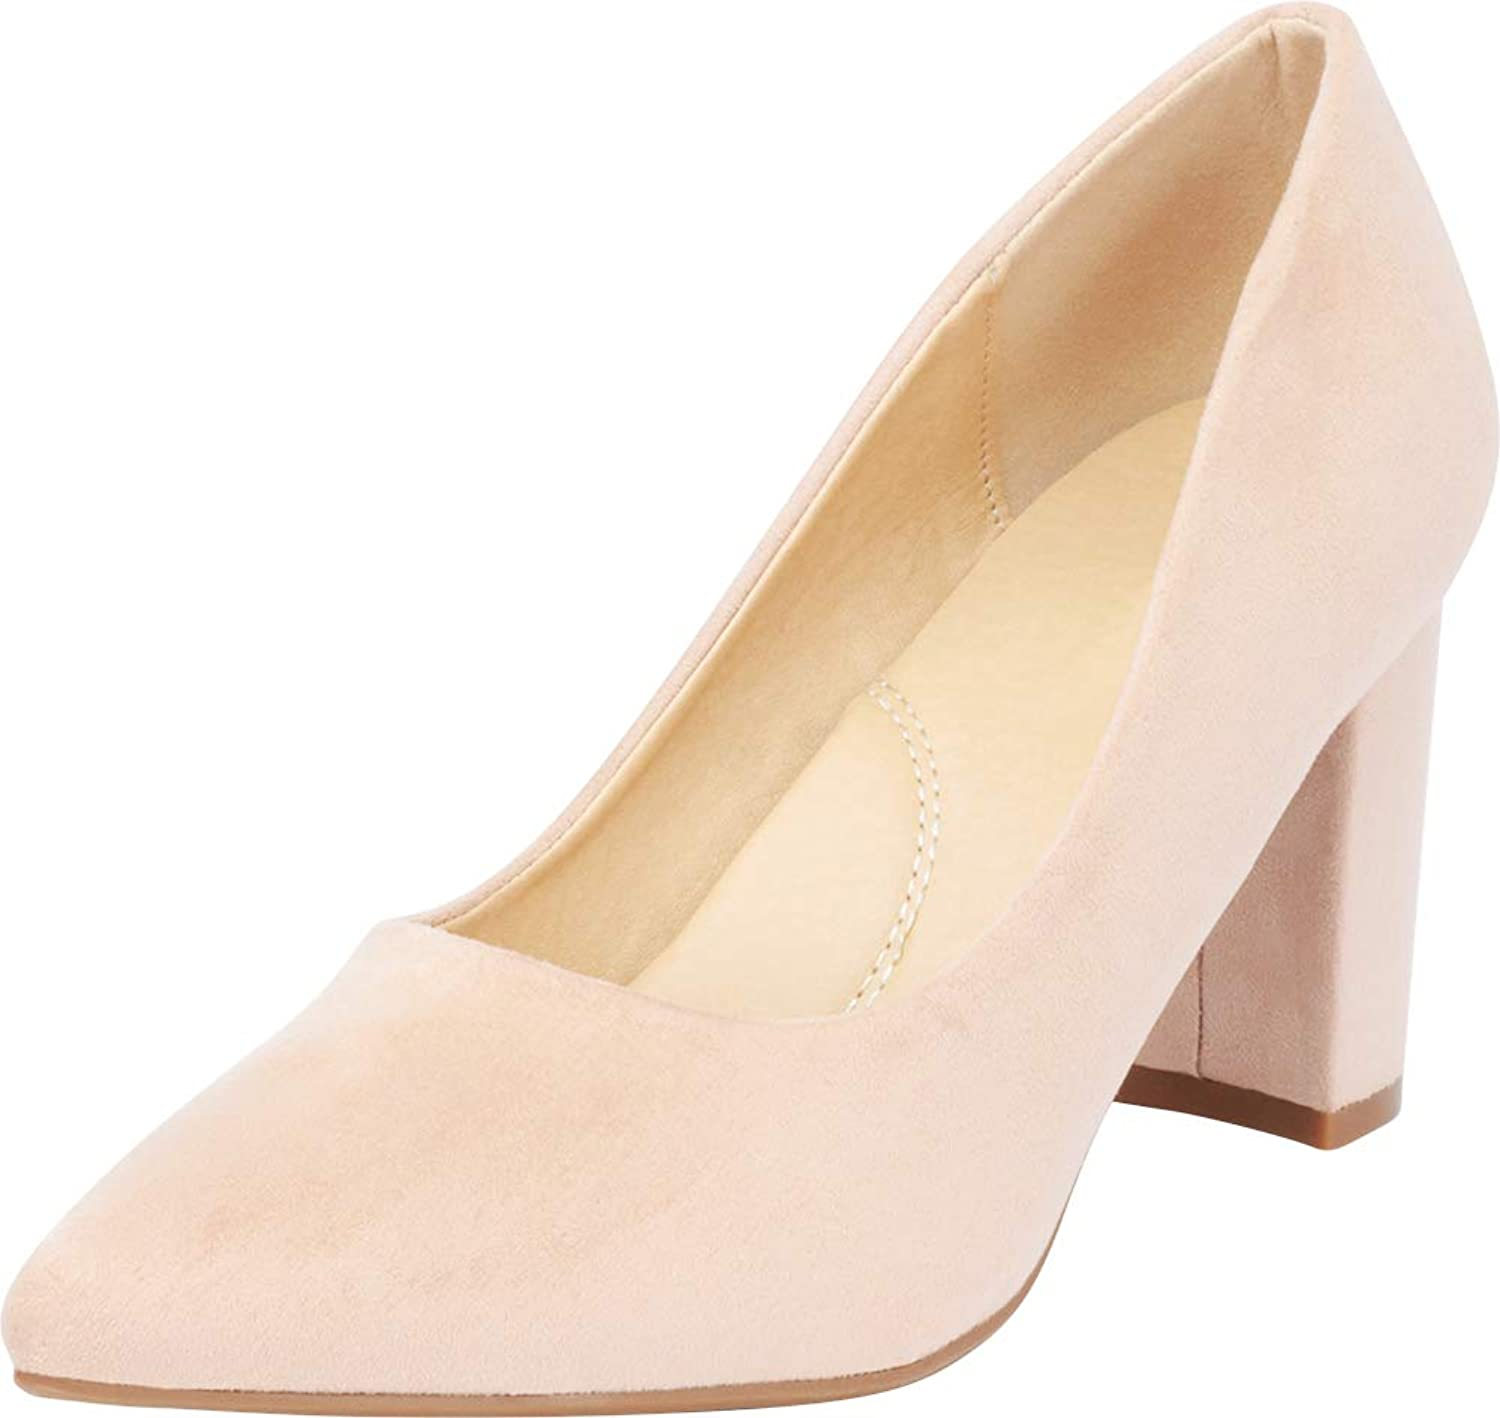 Cambridge Select Women's Pointed Toe Slip-On Chunky Block Heel Pump